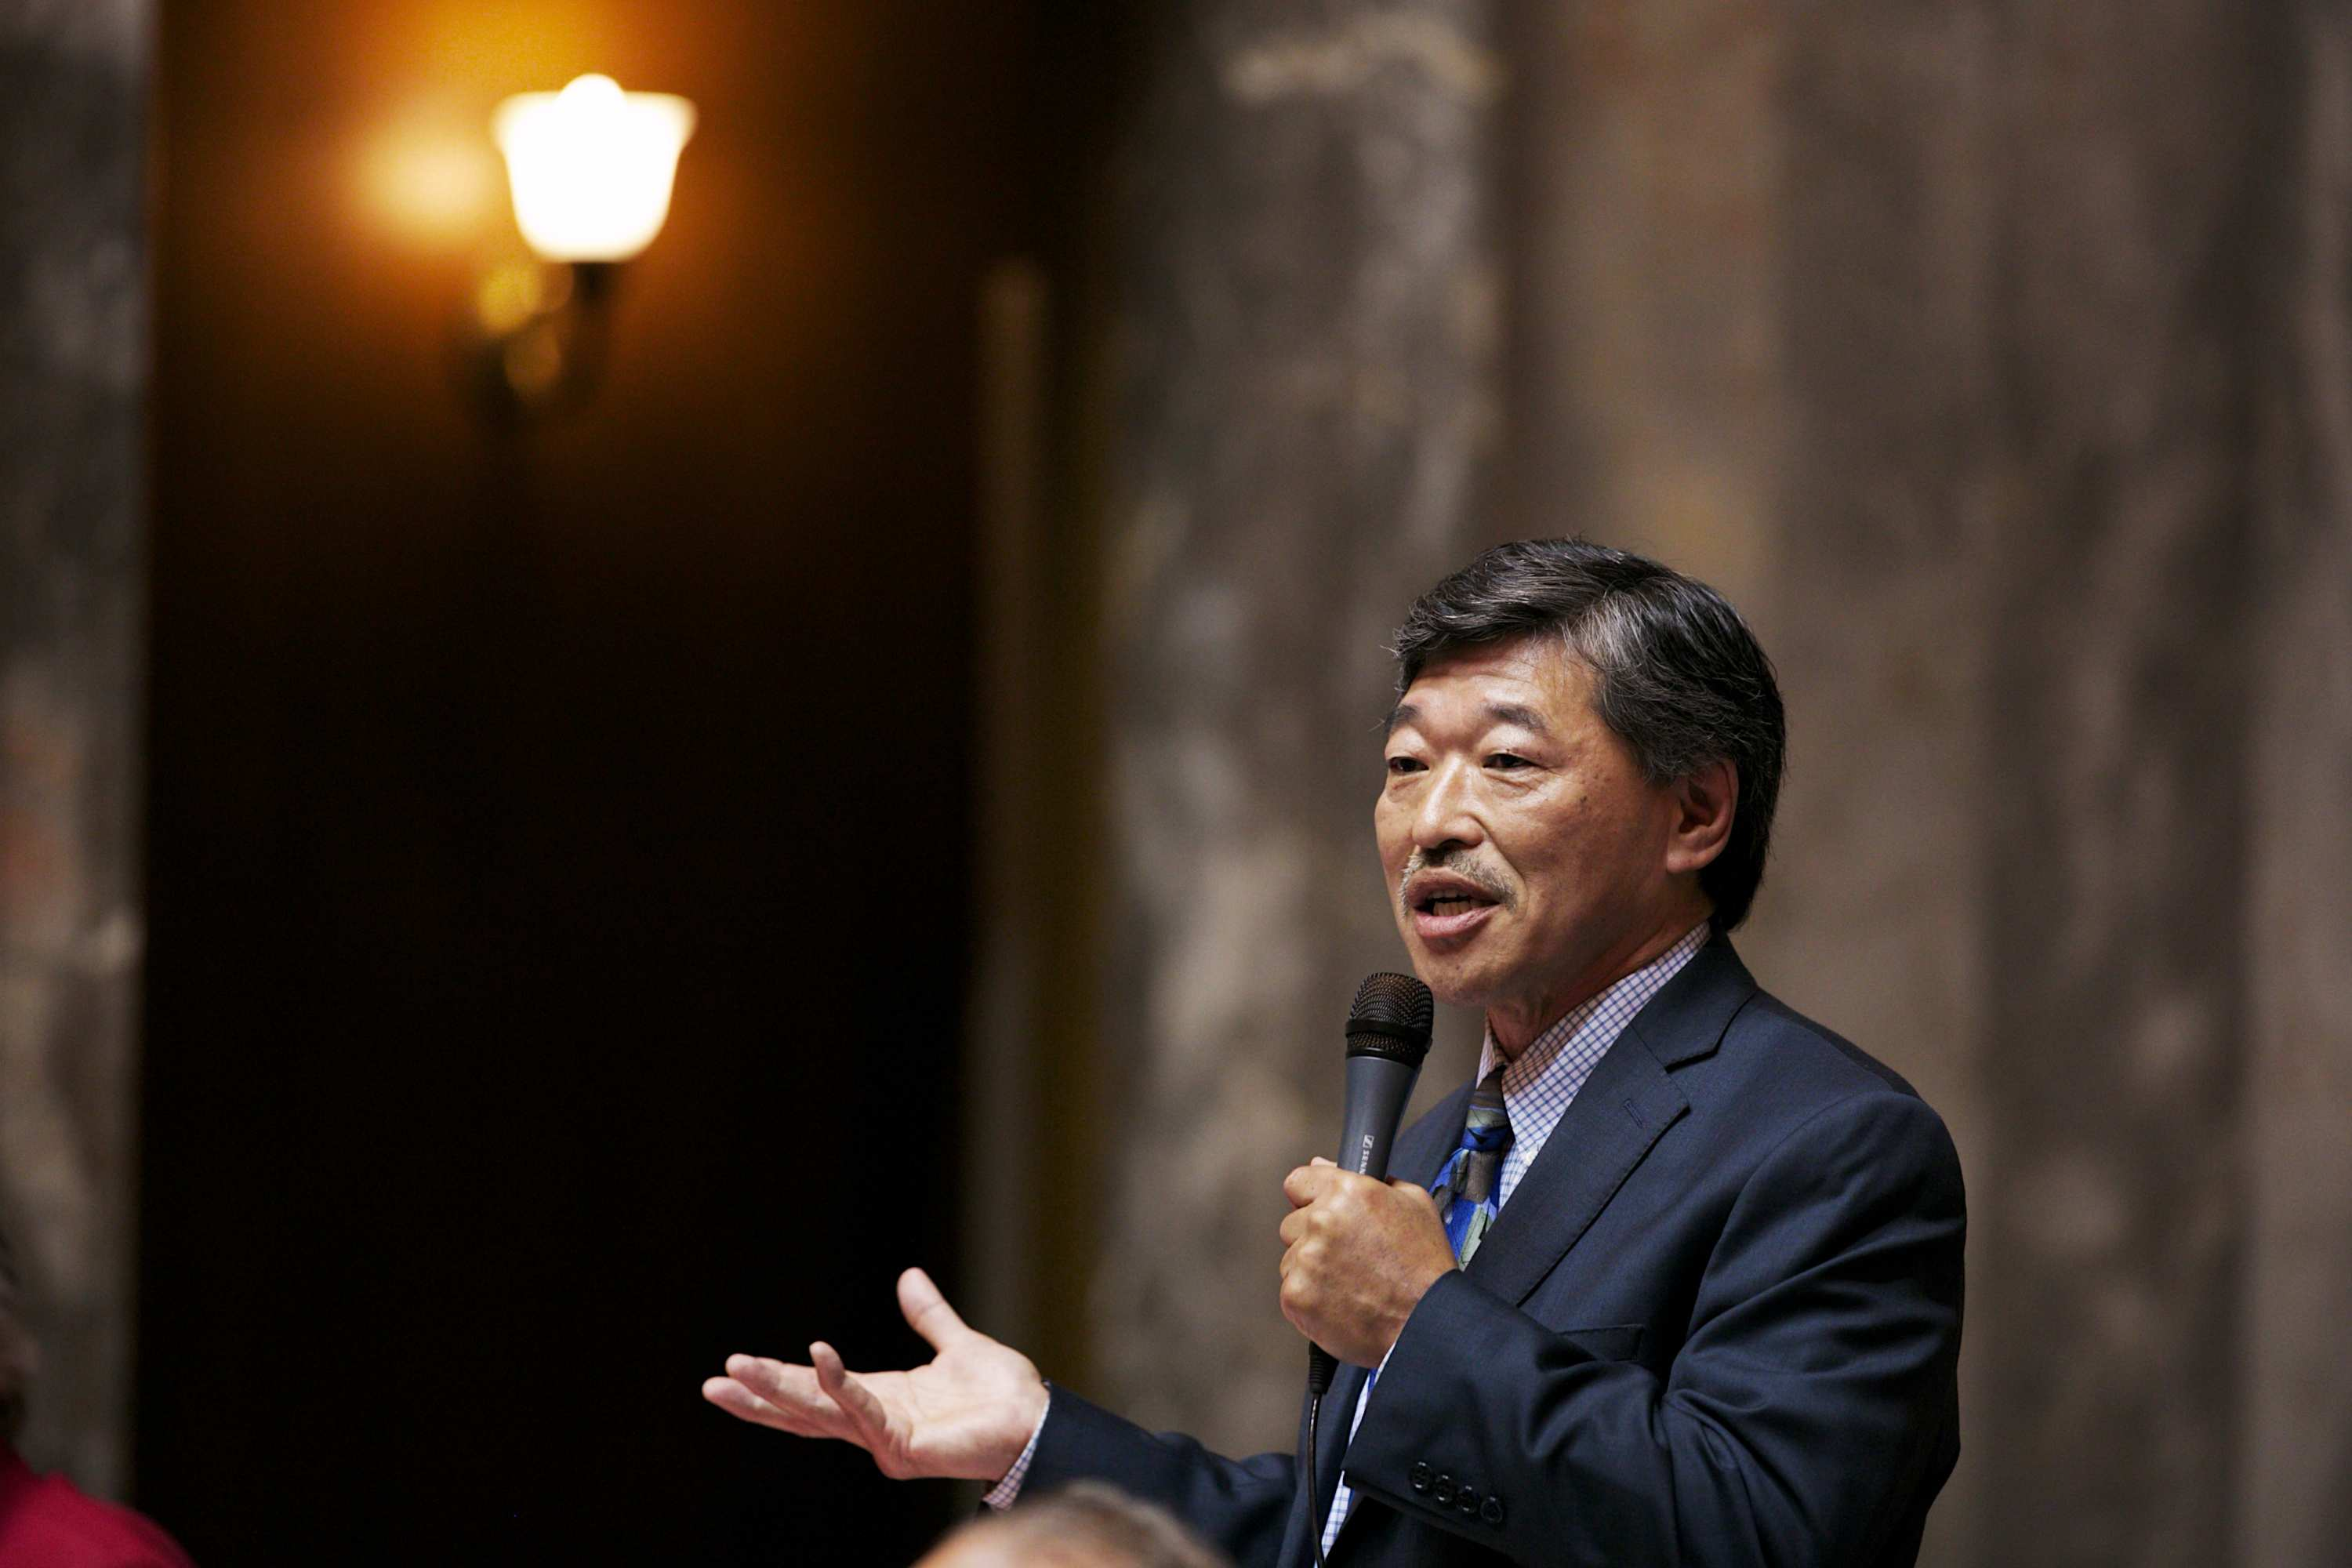 Bob Hasegawa has represented the 11th District since 2005, first in the state House of Representatives, and since 2012 in the state Senate. Photo courtesy of the Washington State Senate Democrats